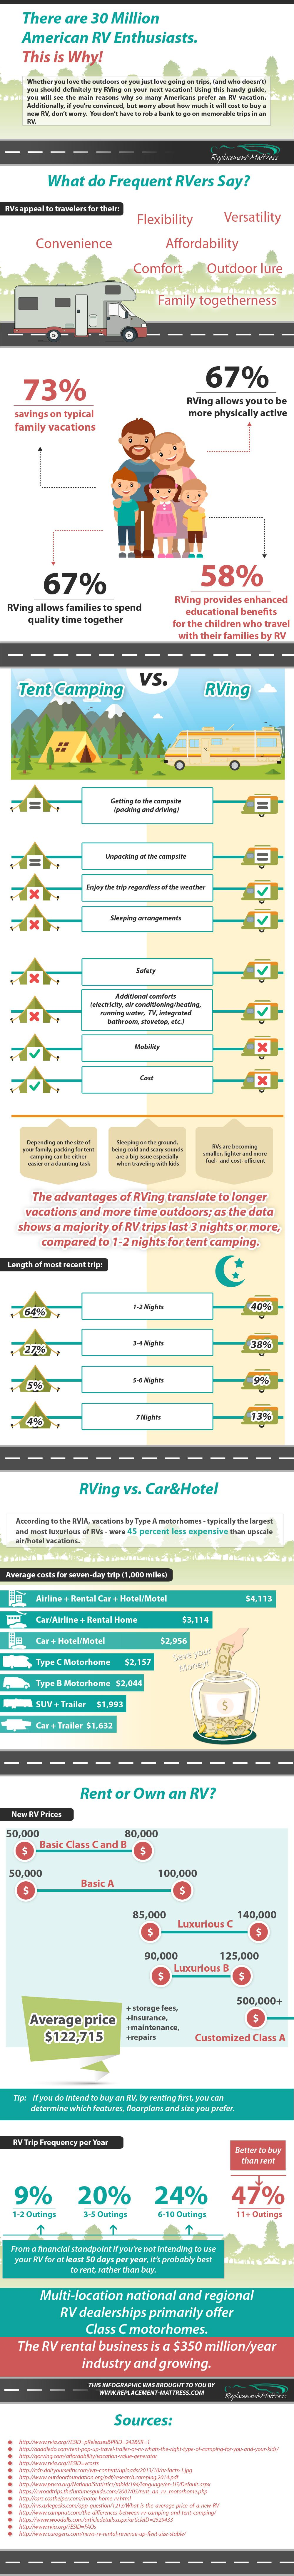 Infographic on why there are 30 million American RV enthusiasts